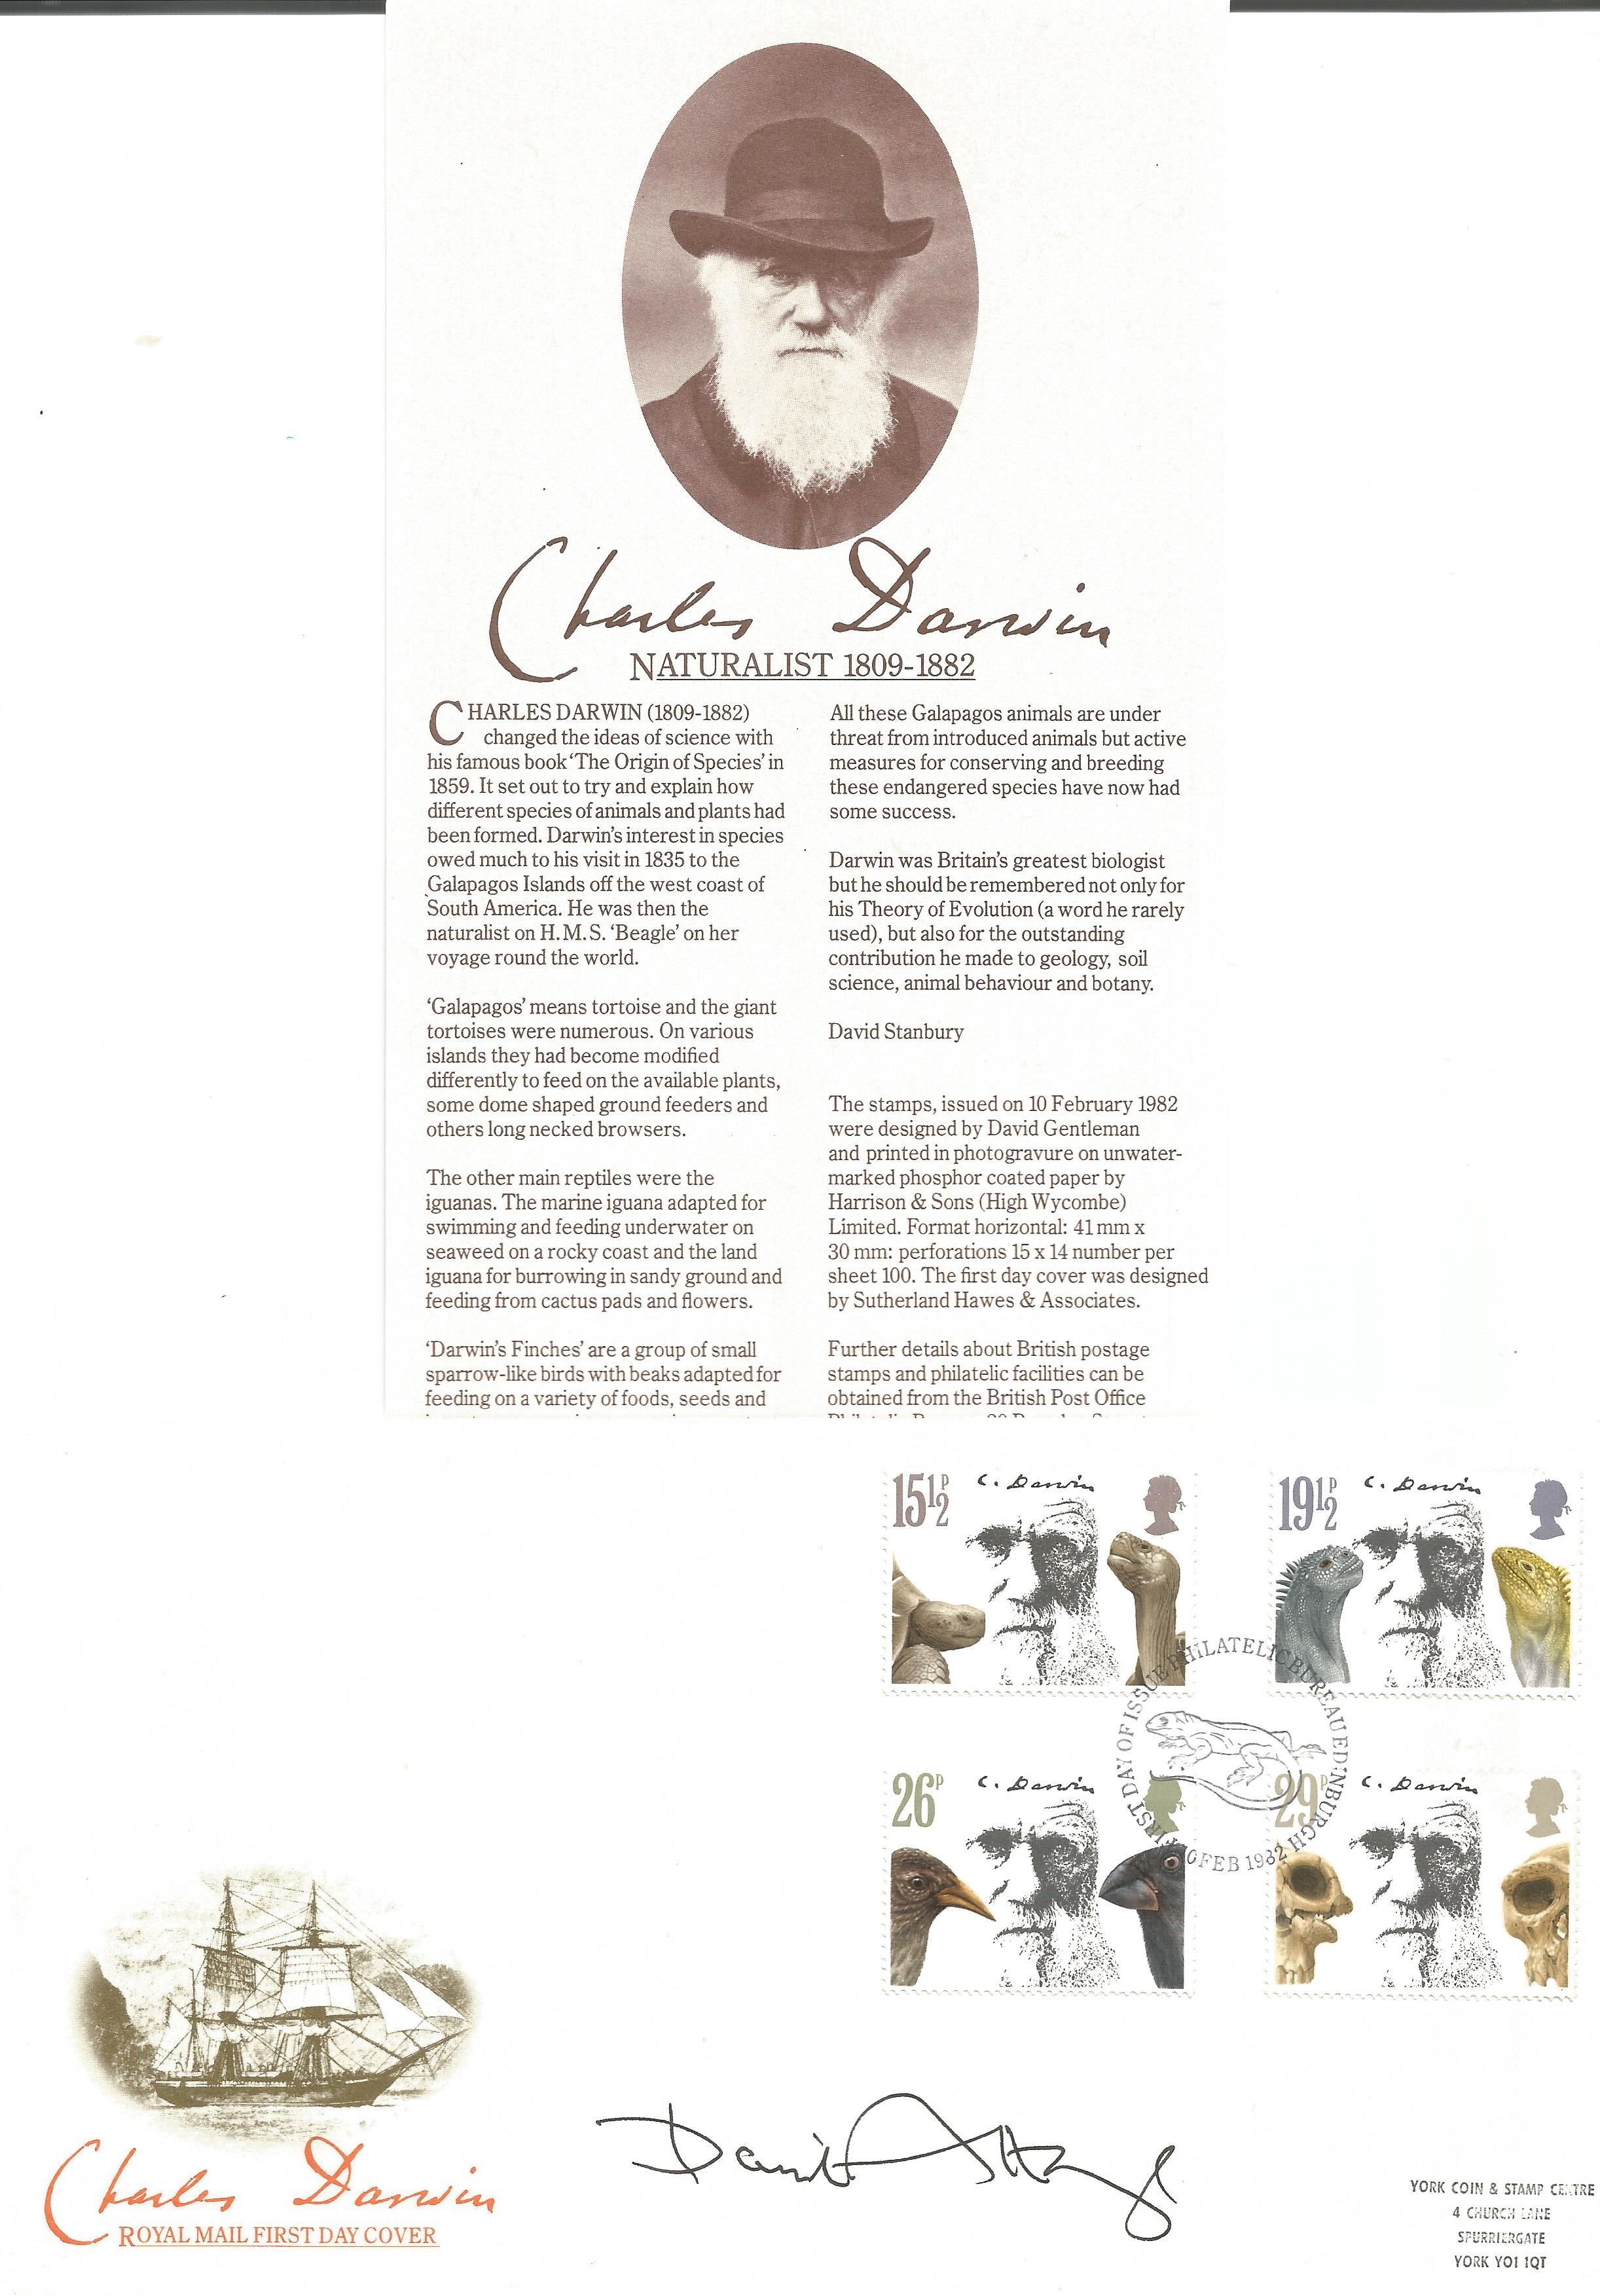 David Attenborough signed FDC commemorating Charles Darwin. This lovely cover also includes an